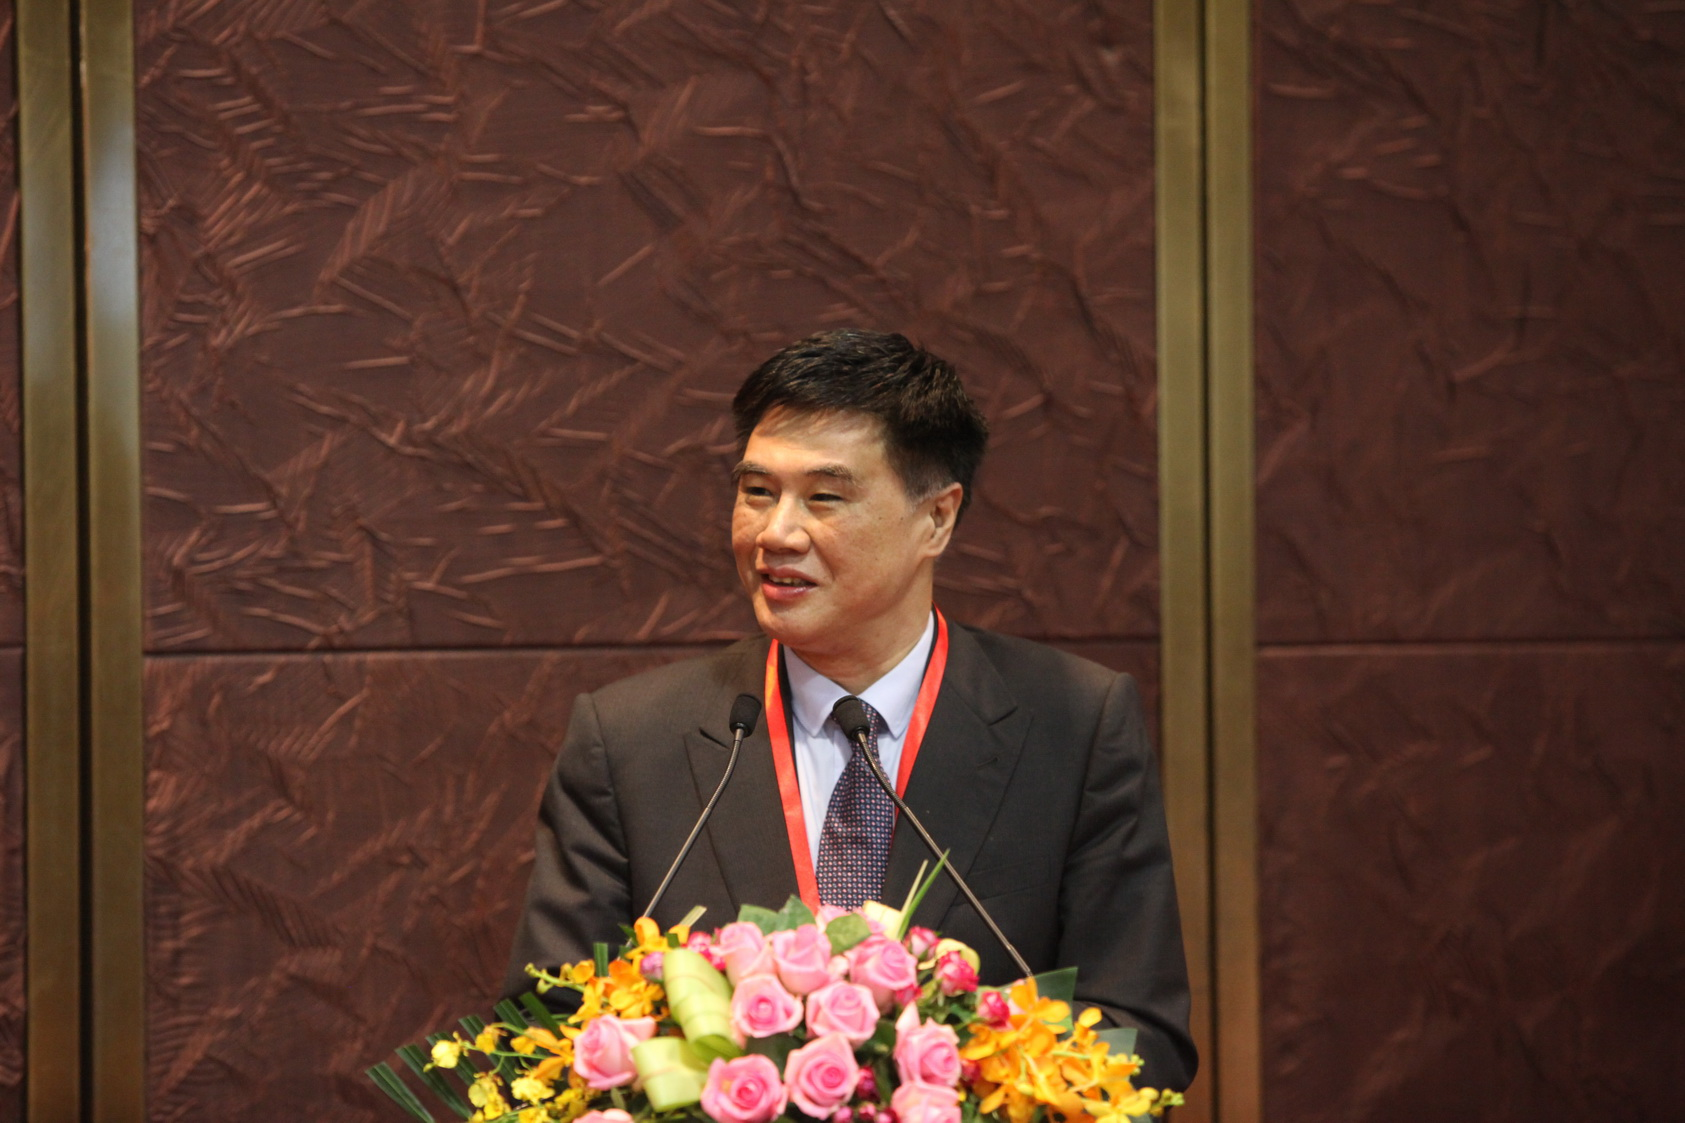 Zhang Xiaoqiang, Executive Vice Chairman and CEO of CCIEE